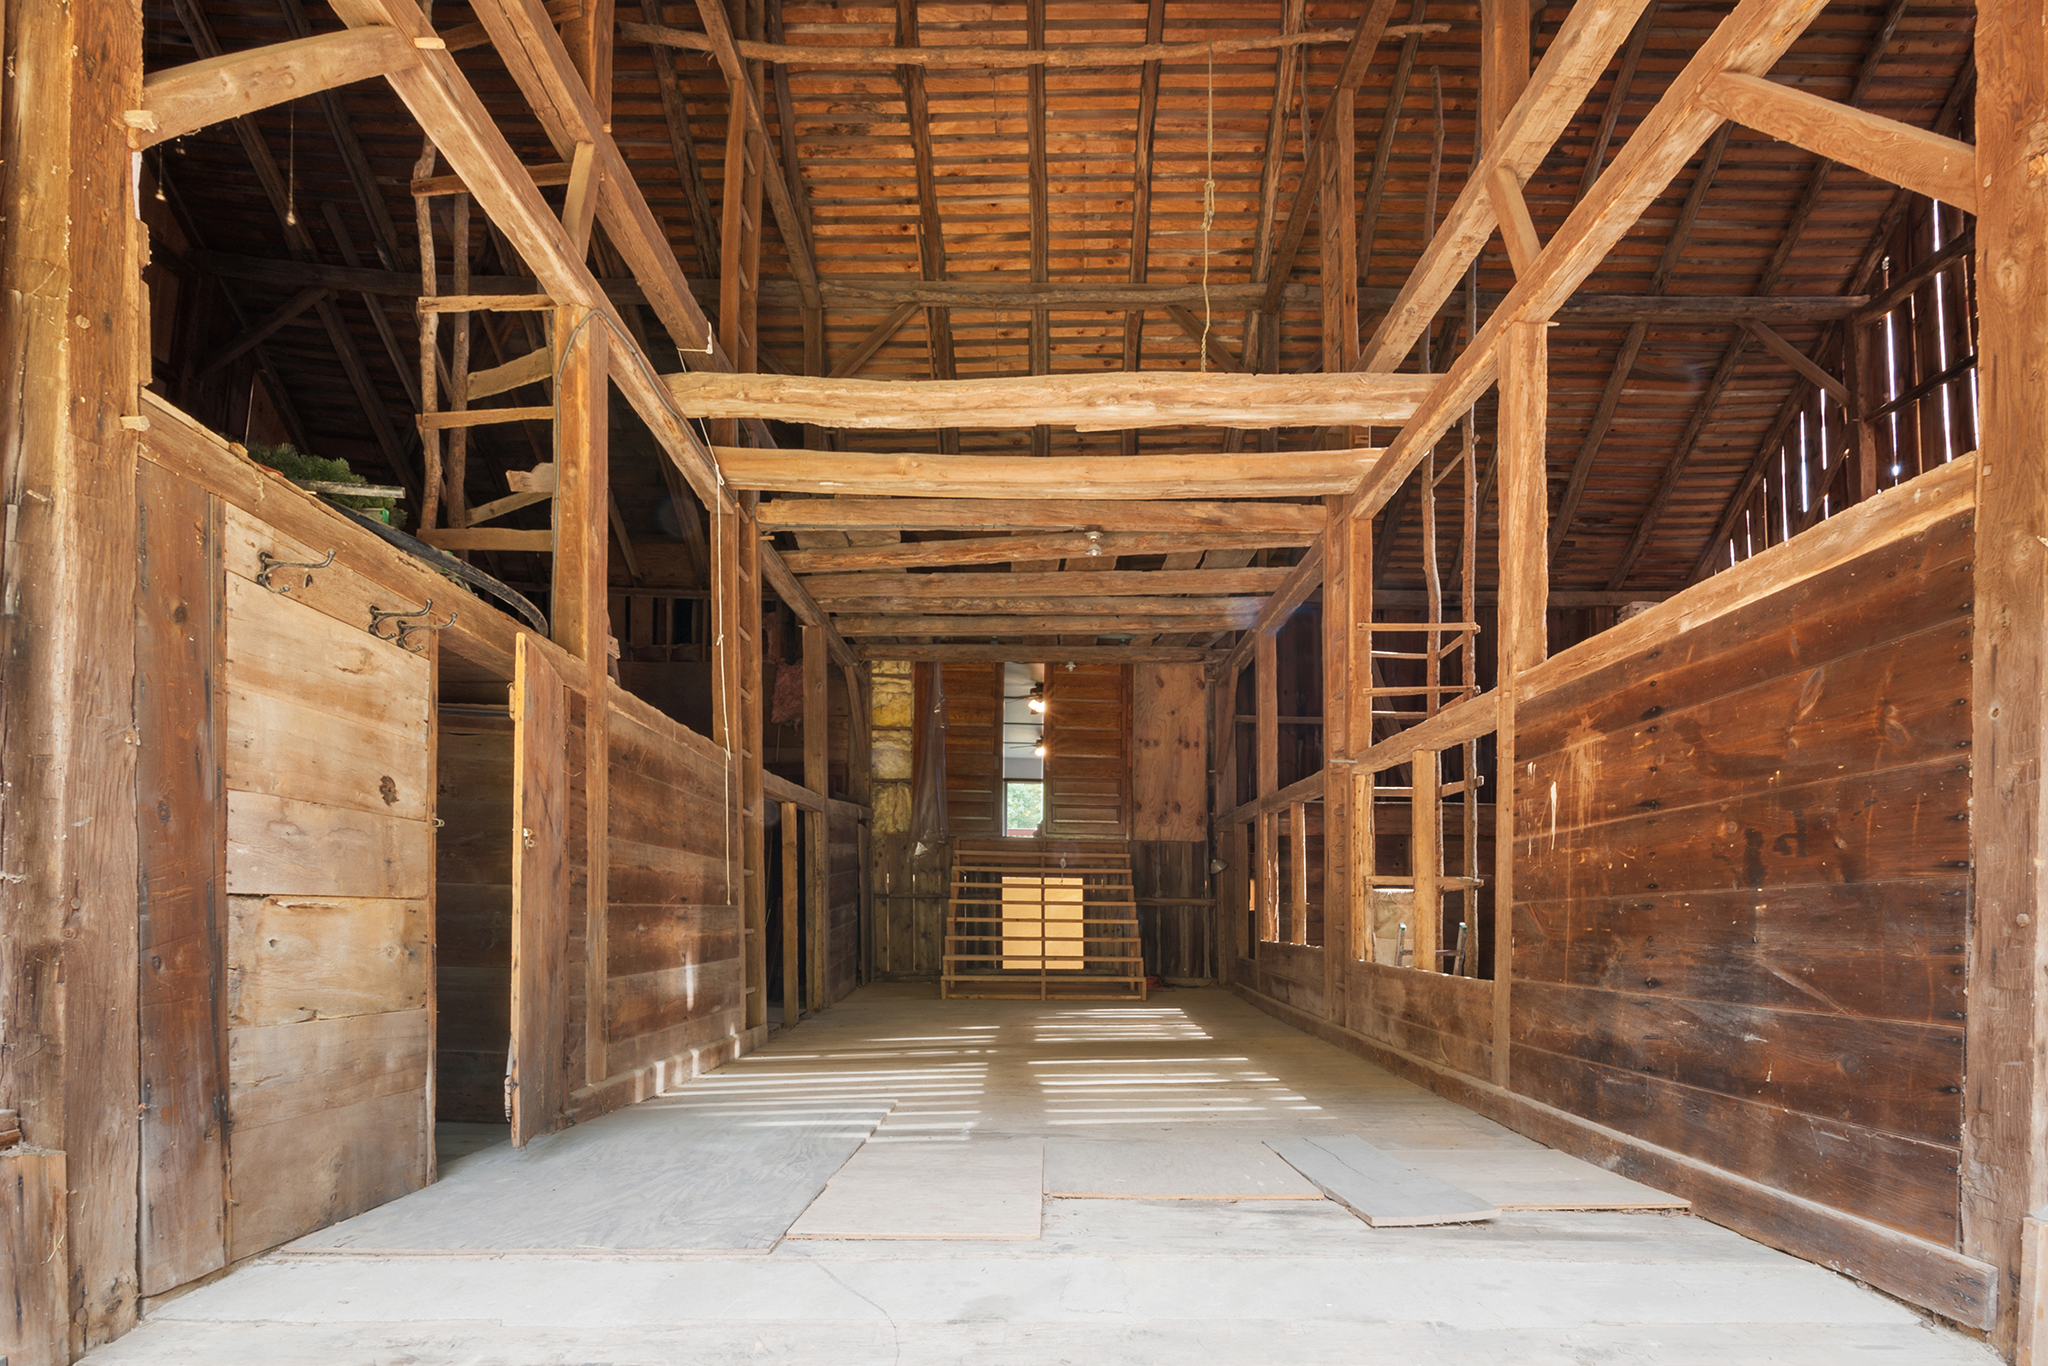 Bucks County Barn | #BucksCountyBarn | Stone Bank Barn in Bucks County |#StoneBankBarnBucks